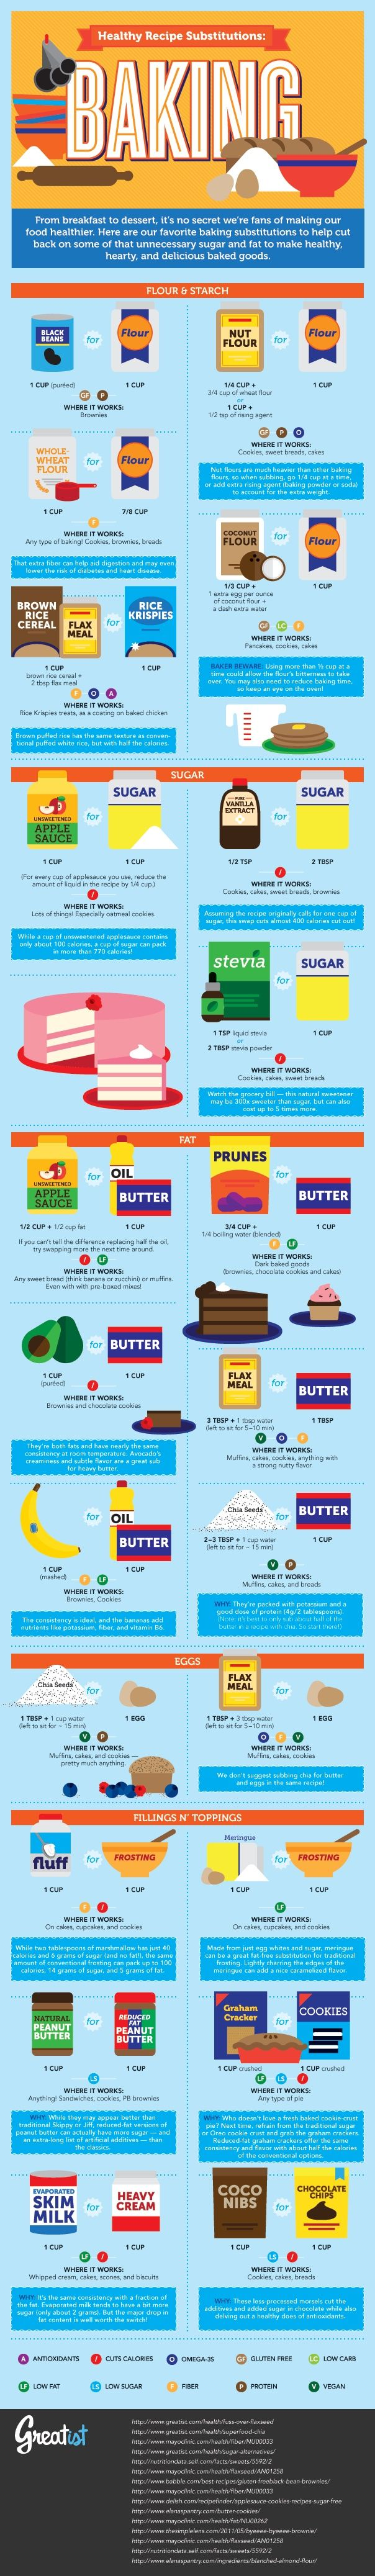 Healthy Recipe Substitutions: Baking